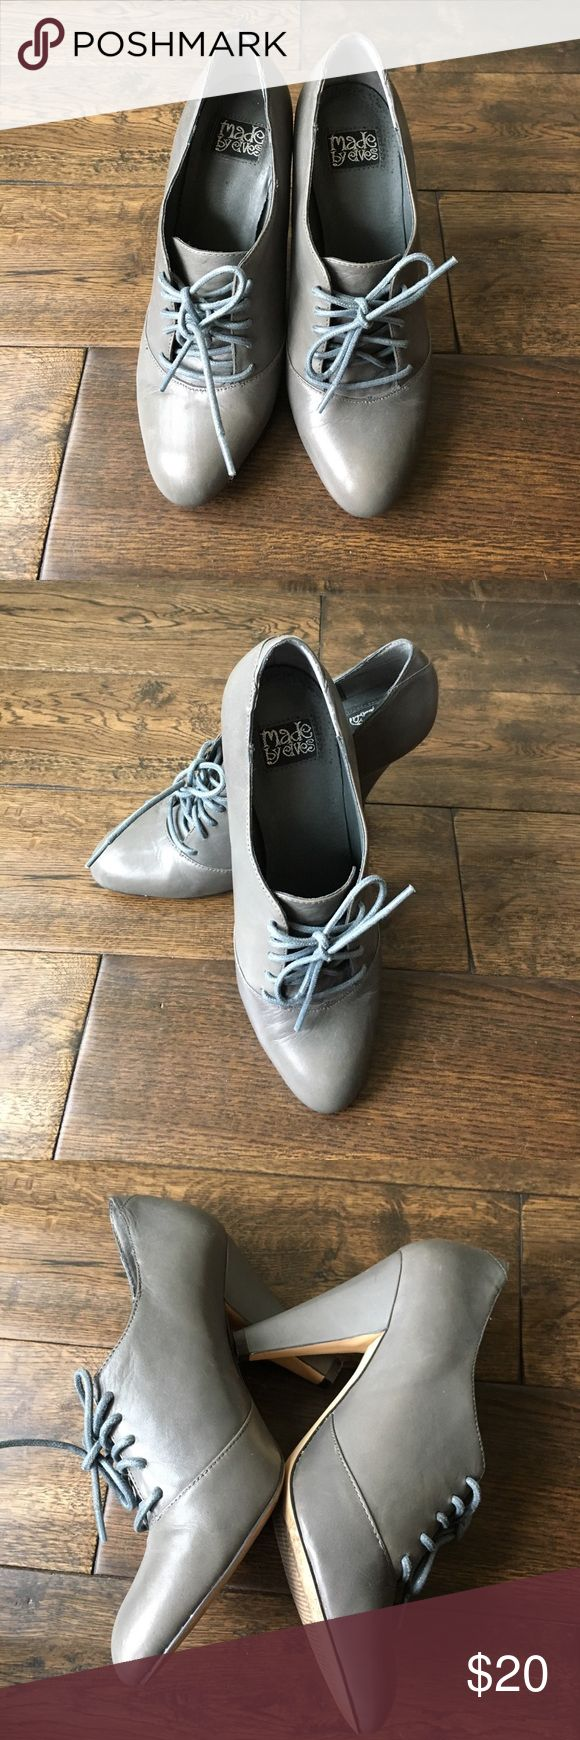 "Urban outfitters made by elves lace up heels  7.5 Worn 2x has 4"" heel. Great condition. I accept most offers. Comment with questions ❤️ Urban Outfitters Shoes Heels"